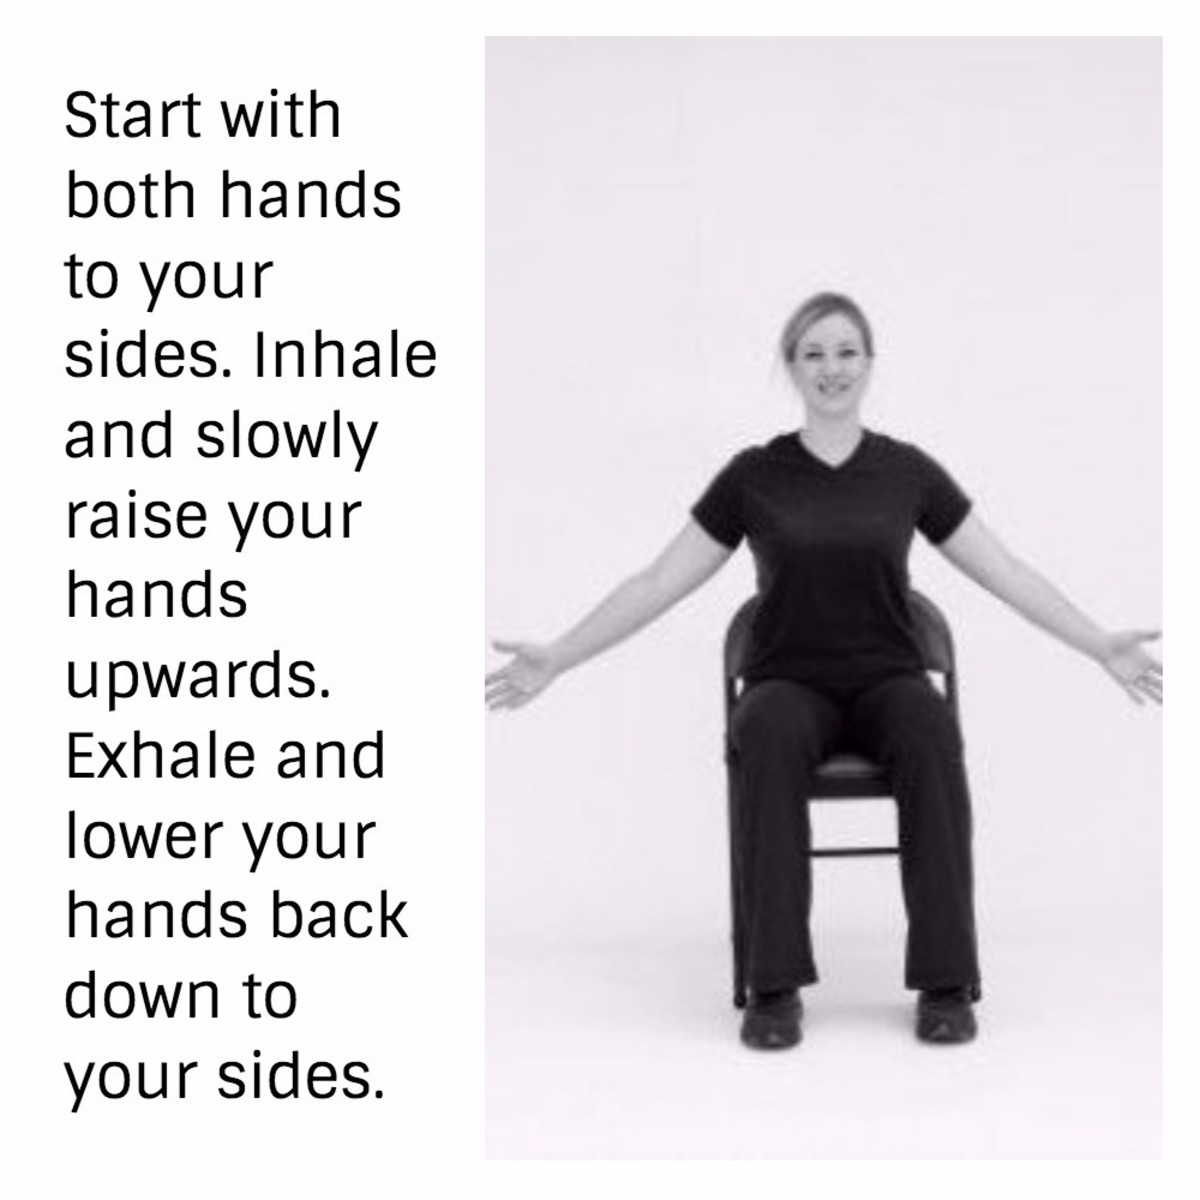 Chair exercises for seniors - 28 Strength Training Balance Chair Exercises For Seniors Caloriebee